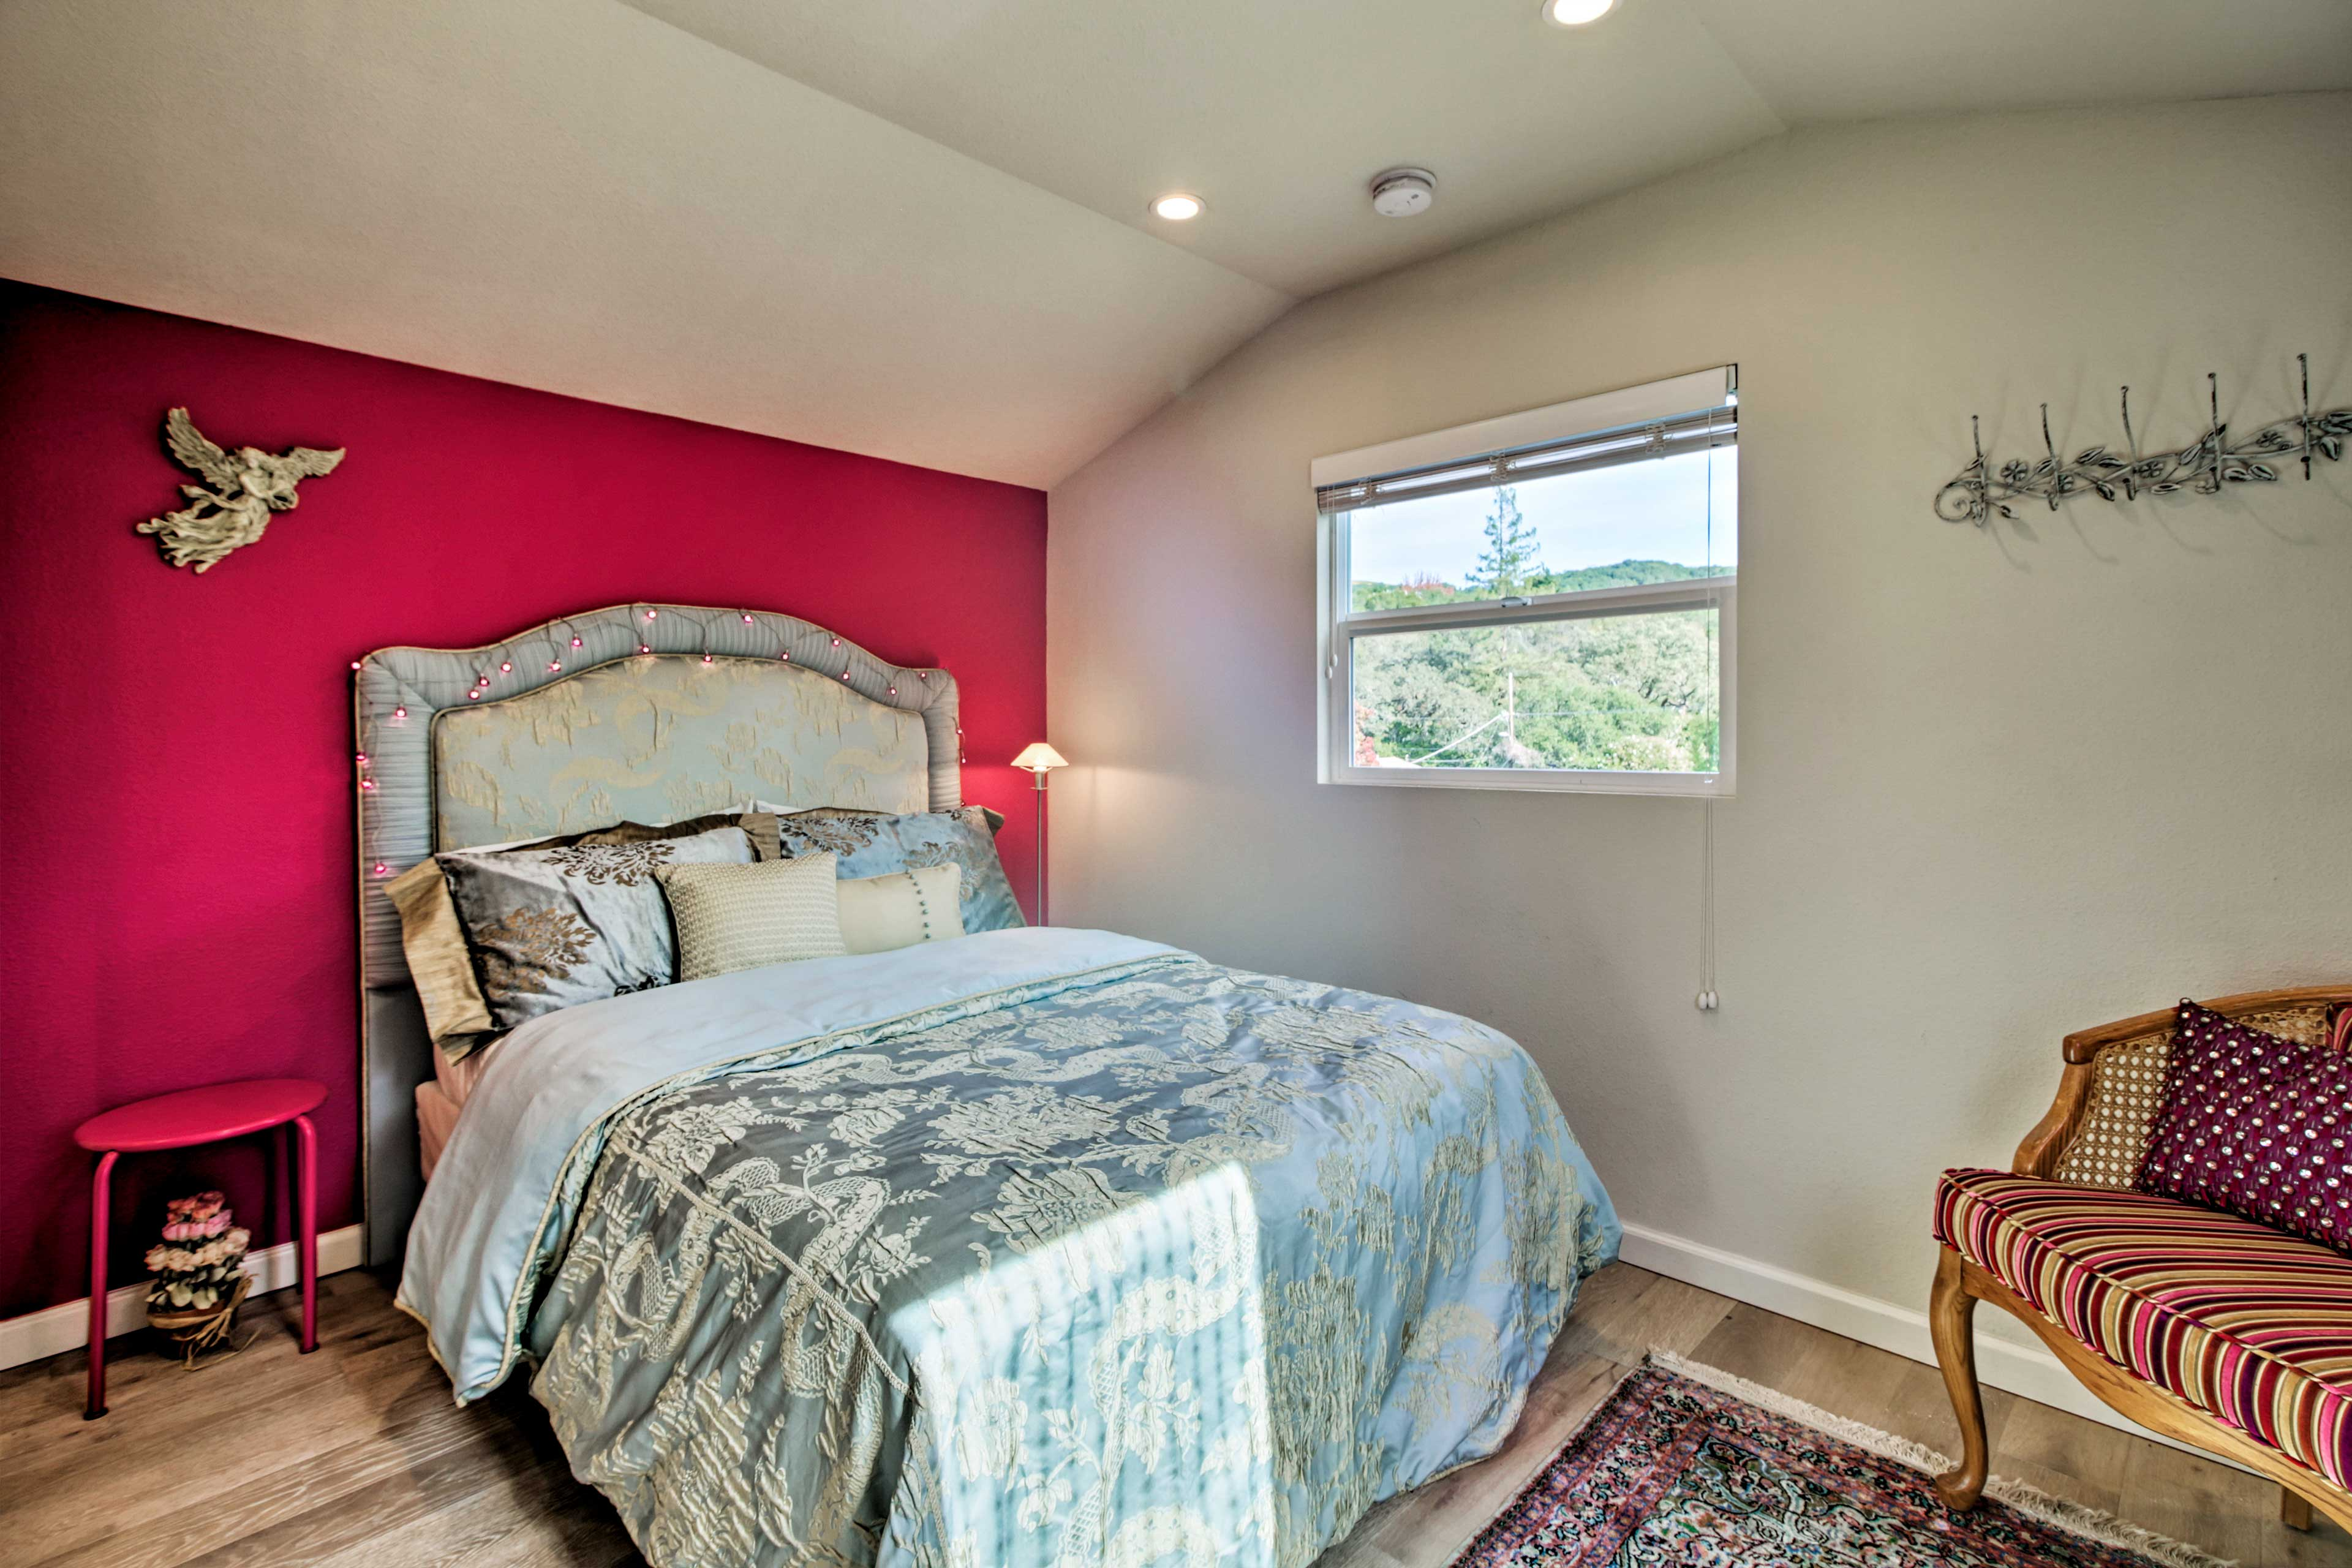 The bedroom boasts a lustrous full.